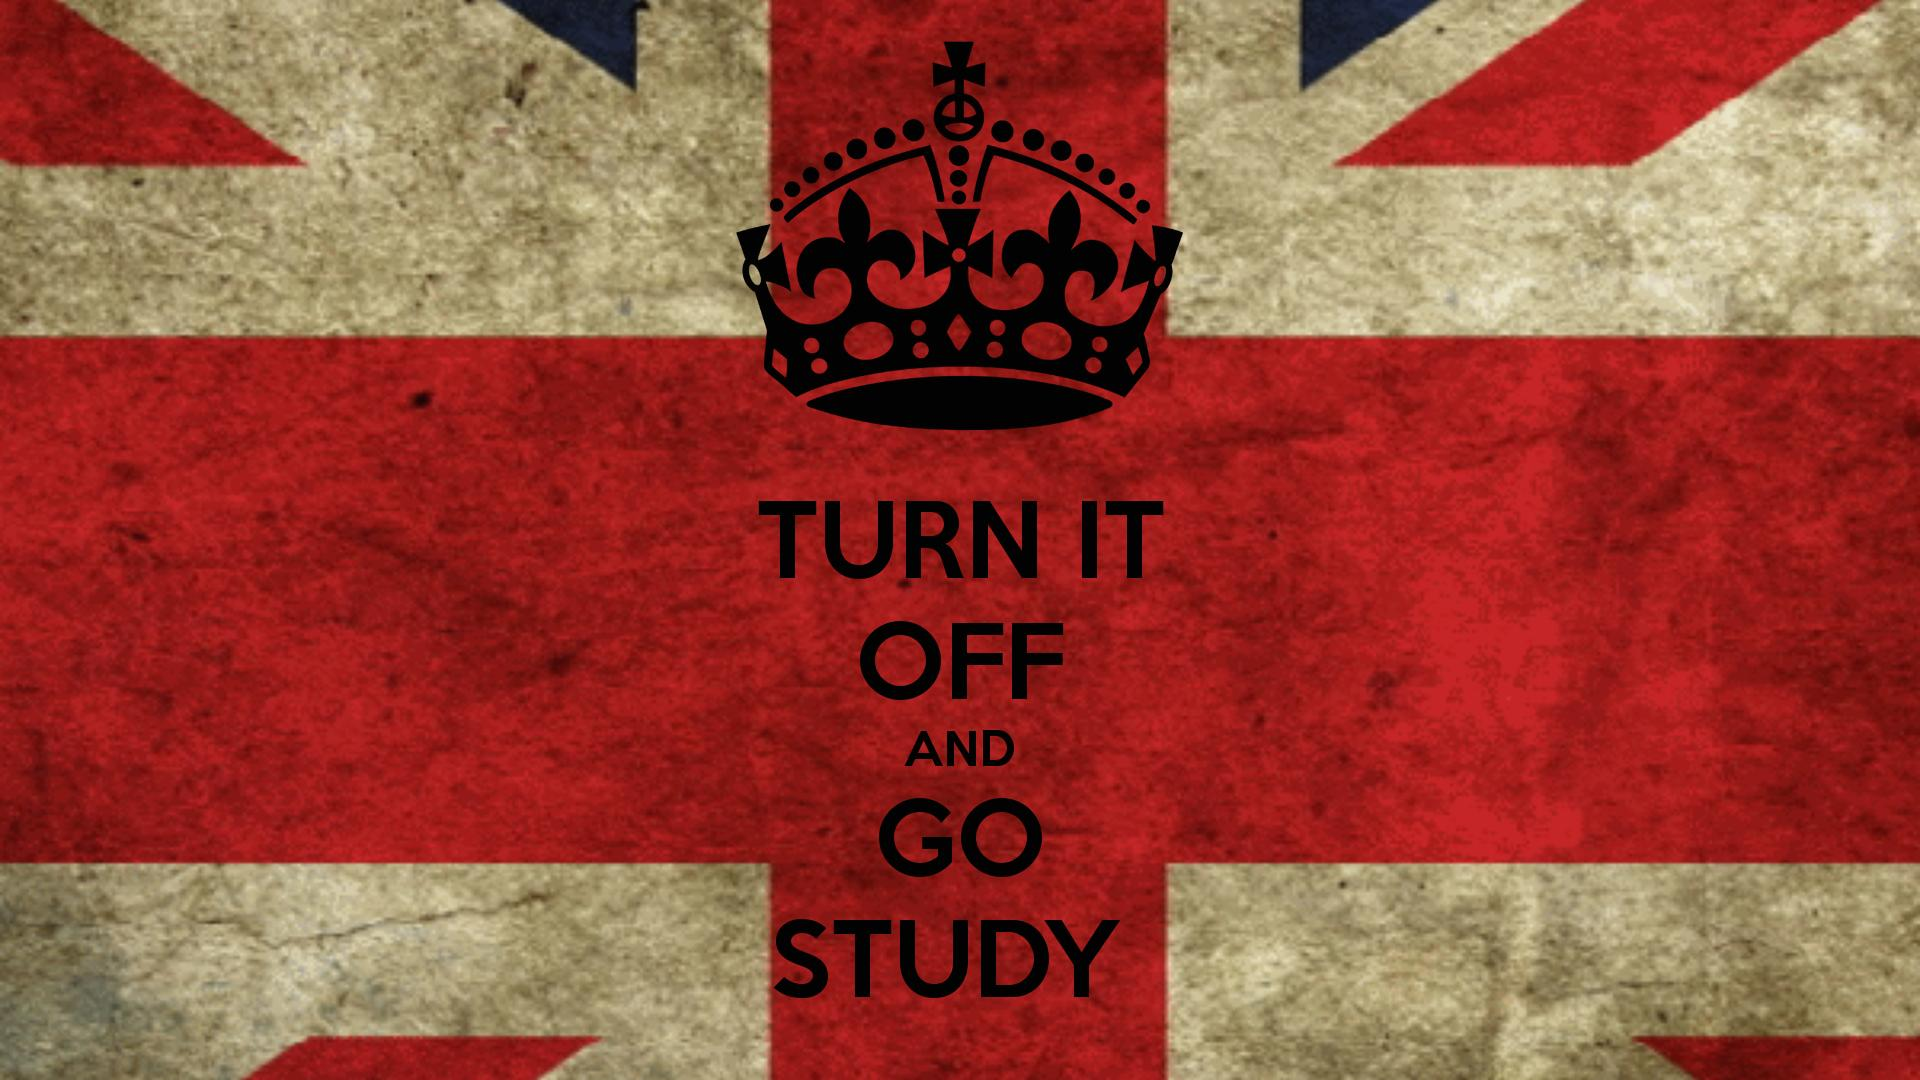 TURN IT OFF AND GO STUDY   KEEP CALM AND CARRY ON Image Generator